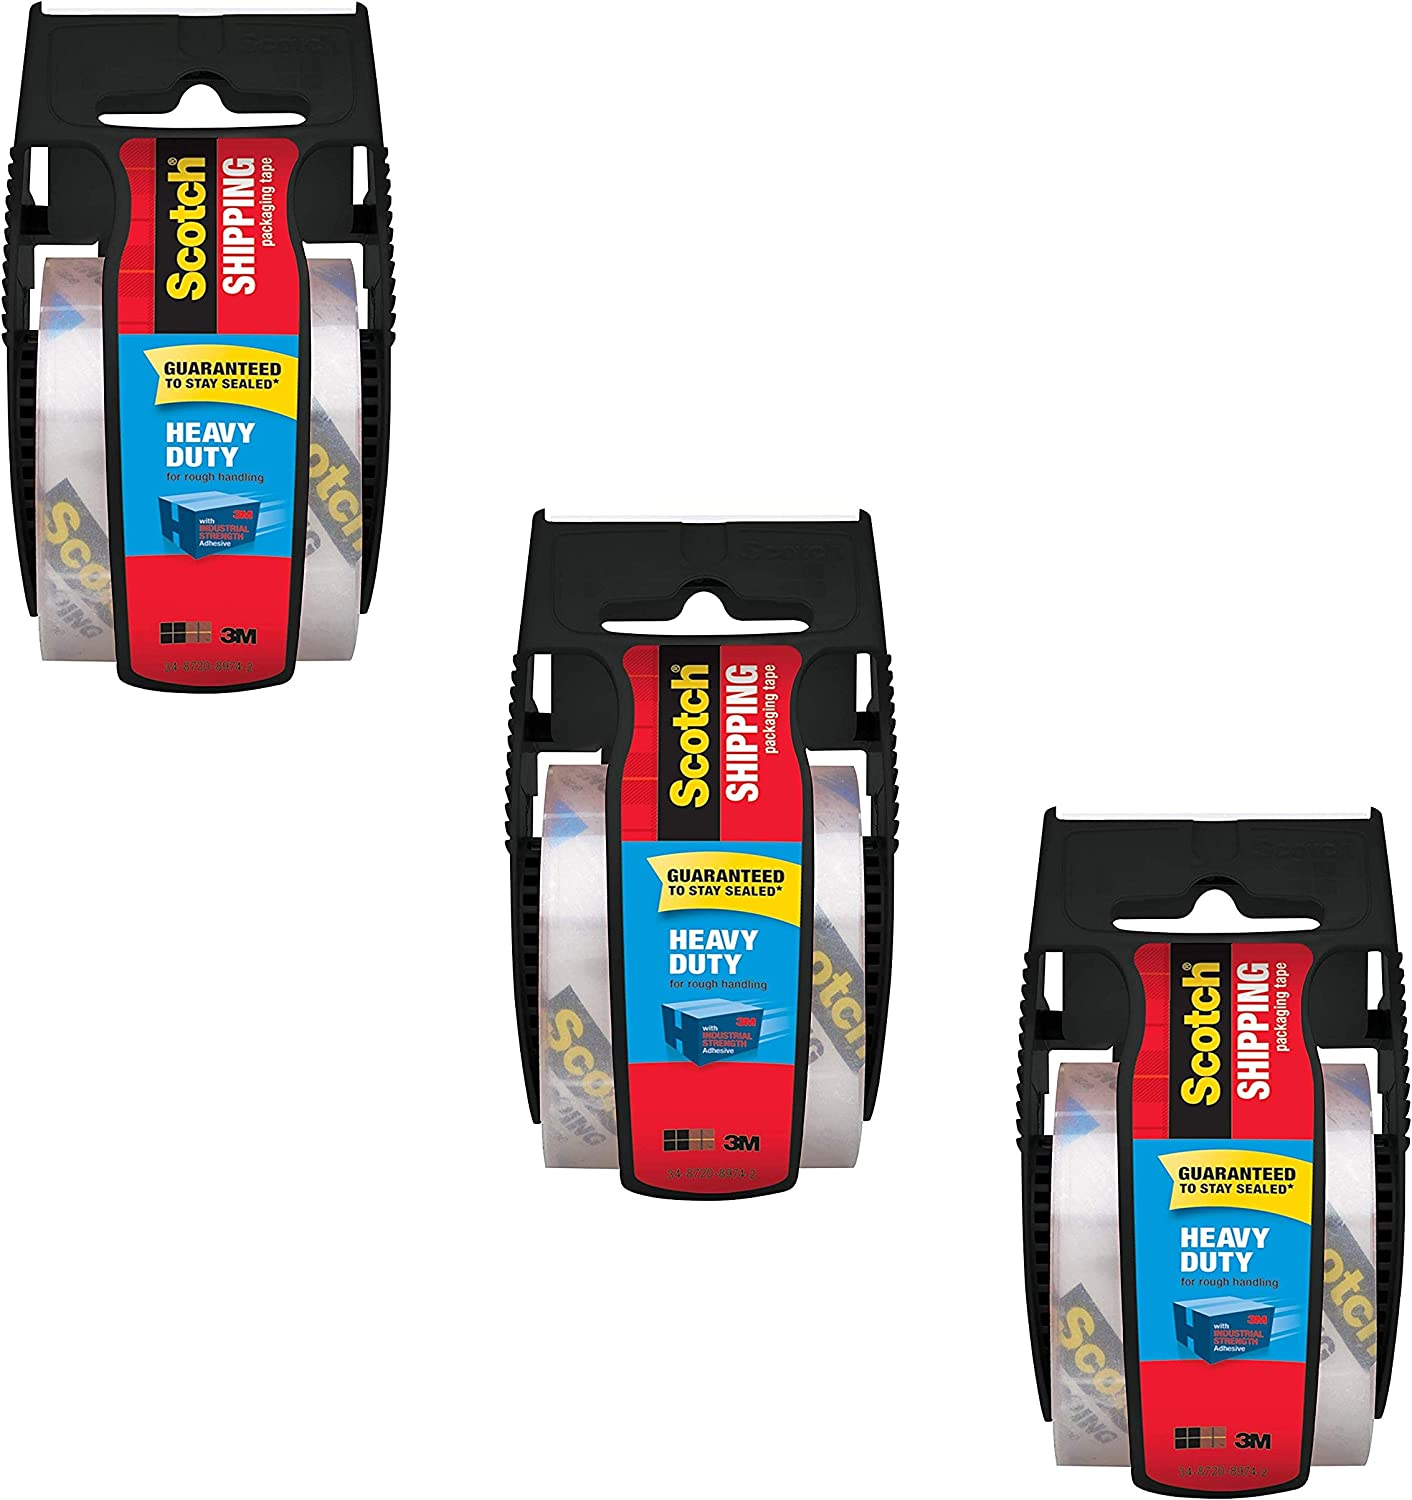 1 Core 142-700-H Scotch Heavy Duty Shipping Packaging Tape Pack of 3 1.88 x 19.4 yd,